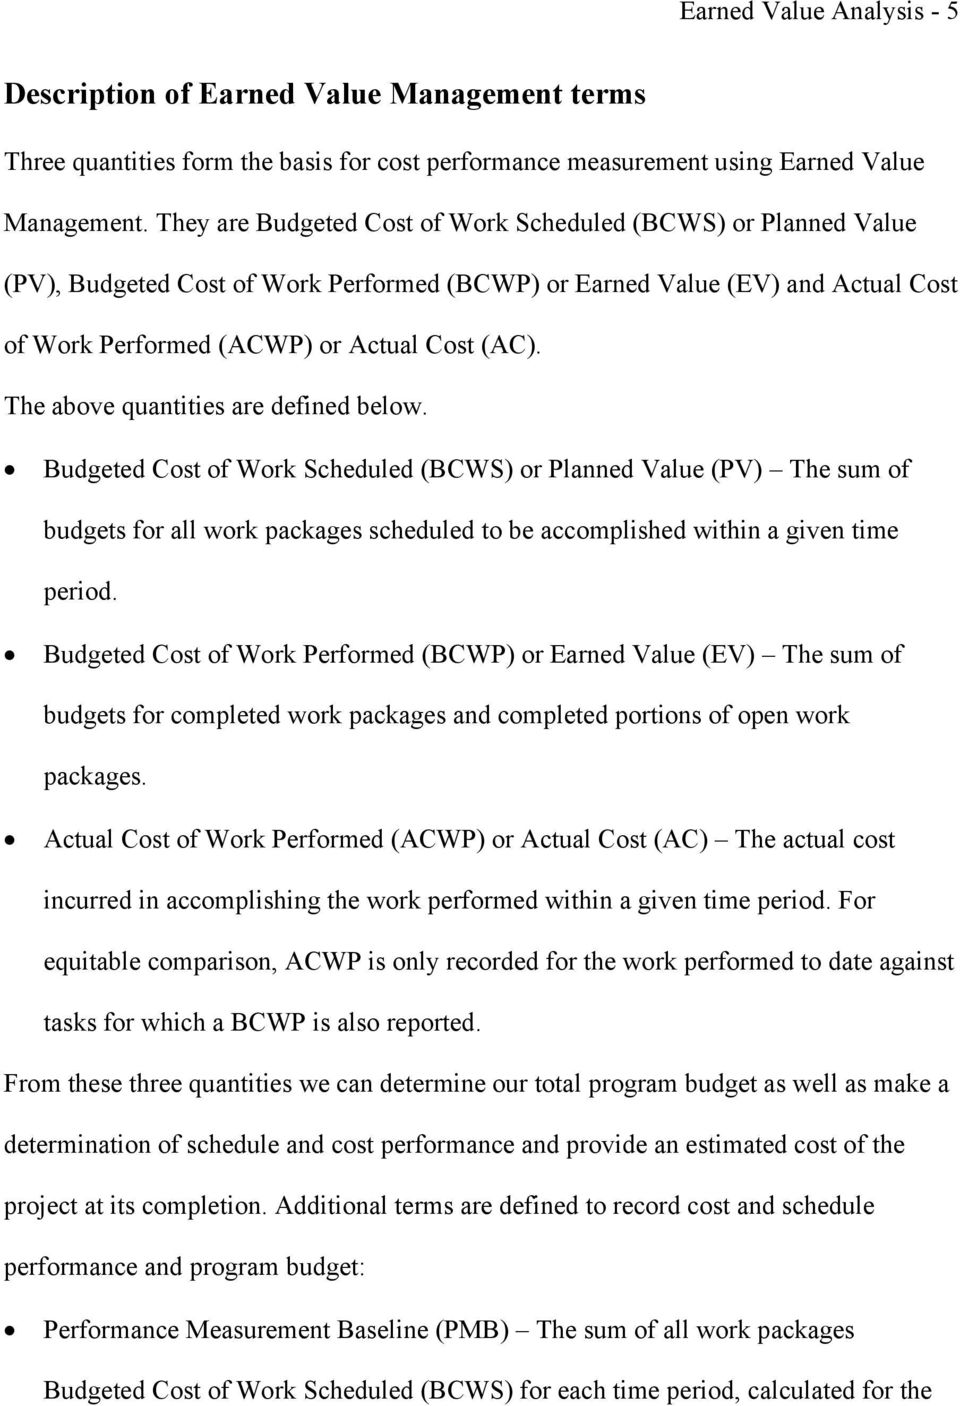 The above quantities are defined below. Budgeted Cost of Work Scheduled (BCWS) or Planned Value (PV) The sum of budgets for all work packages scheduled to be accomplished within a given time period.